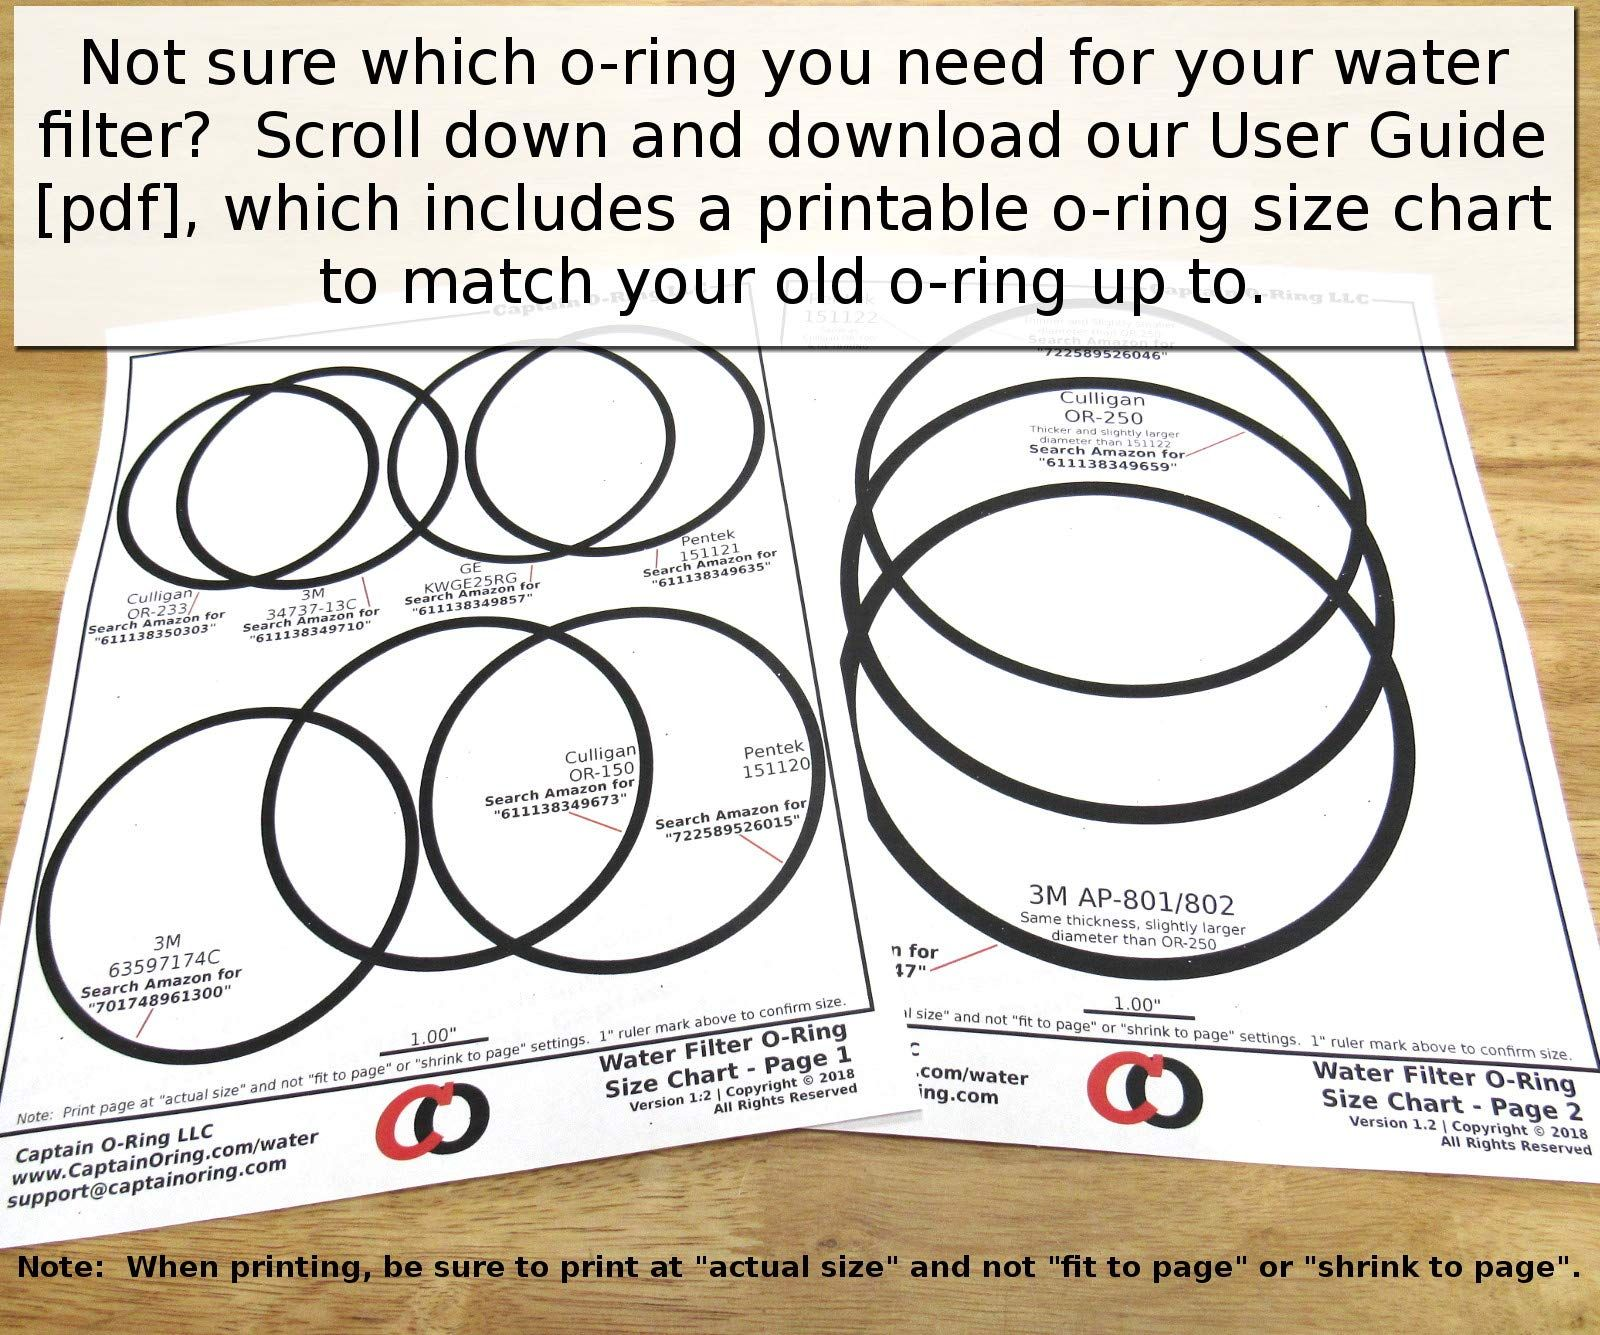 Captain O Ring Ge Kwge25rg Ws03x10038 Replacement Orings For Ge Gxwh01c Cxwh08c Gxwh04f Gxwh20f Gxwh20s Gxrm10 Ring Sizes Chart O Ring Rings